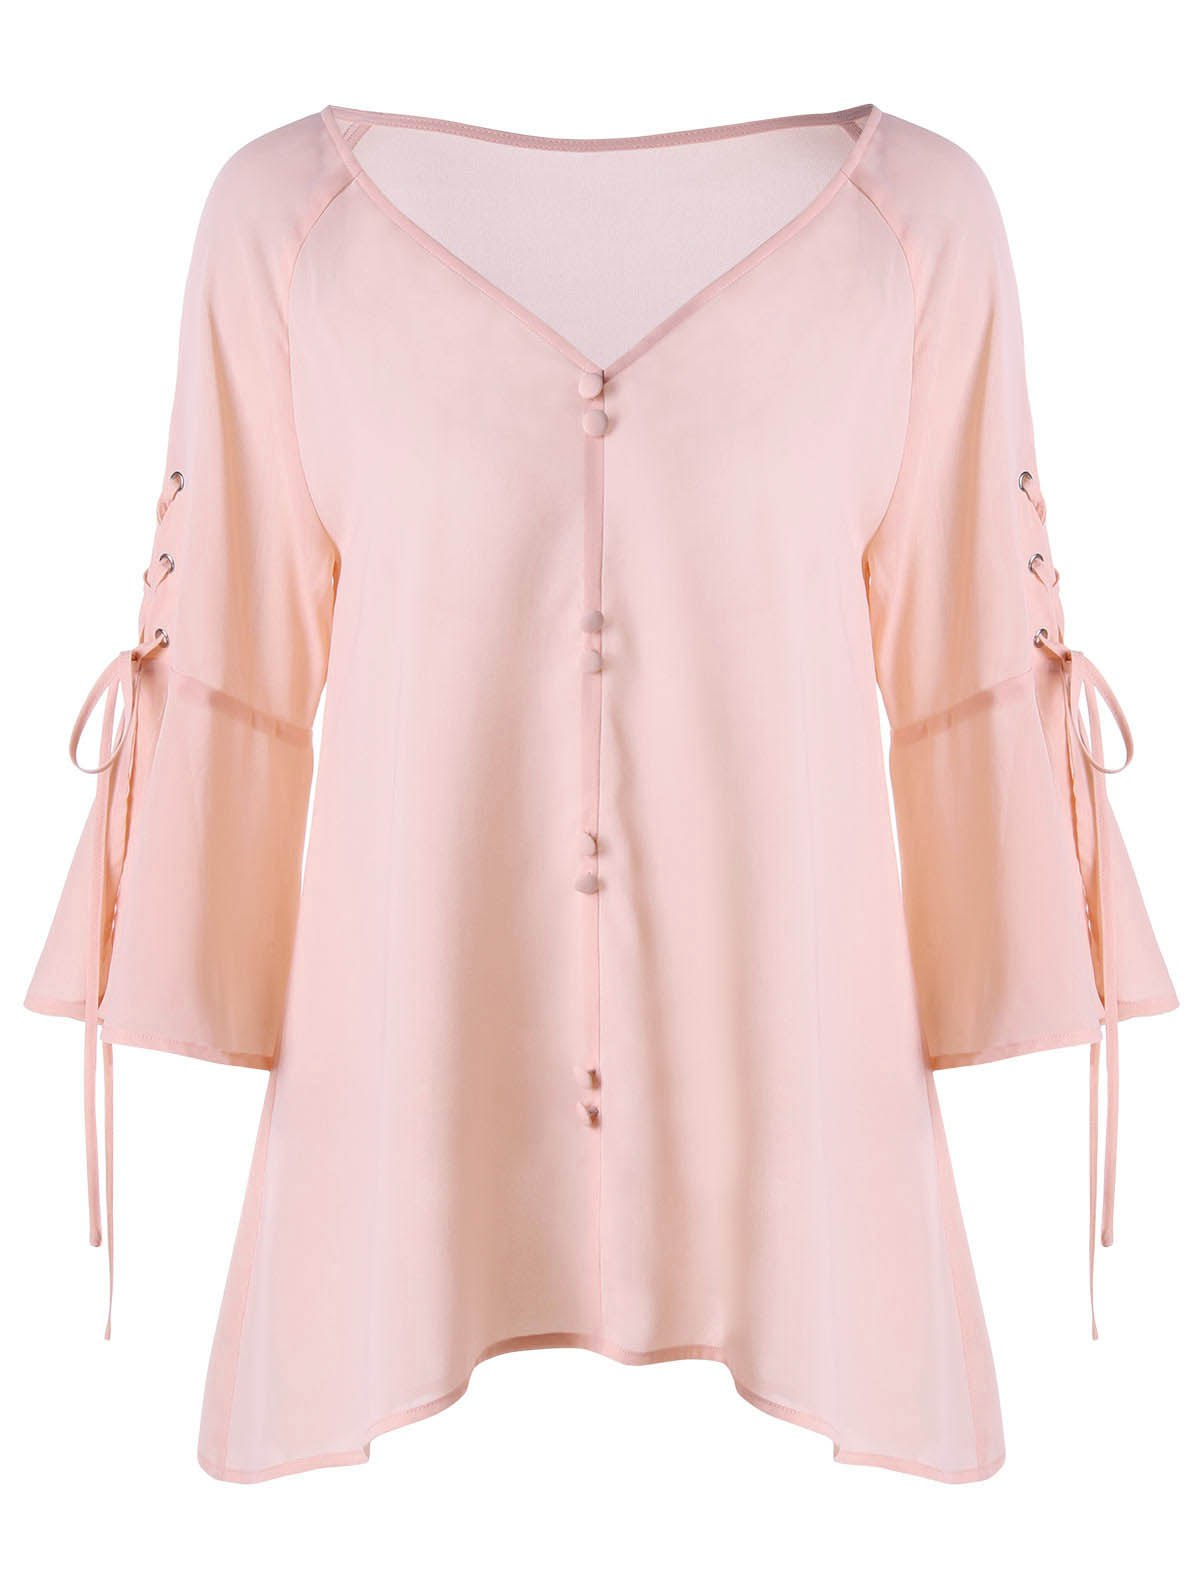 Buttoned V Neck Lace Up BlouseWOMEN<br><br>Size: 2XL; Color: PINK; Material: Polyester; Shirt Length: Regular; Sleeve Length: Three Quarter; Collar: V-Neck; Style: Fashion; Pattern Type: Solid; Season: Fall,Spring; Weight: 0.2210kg; Package Contents: 1 x Blouse;